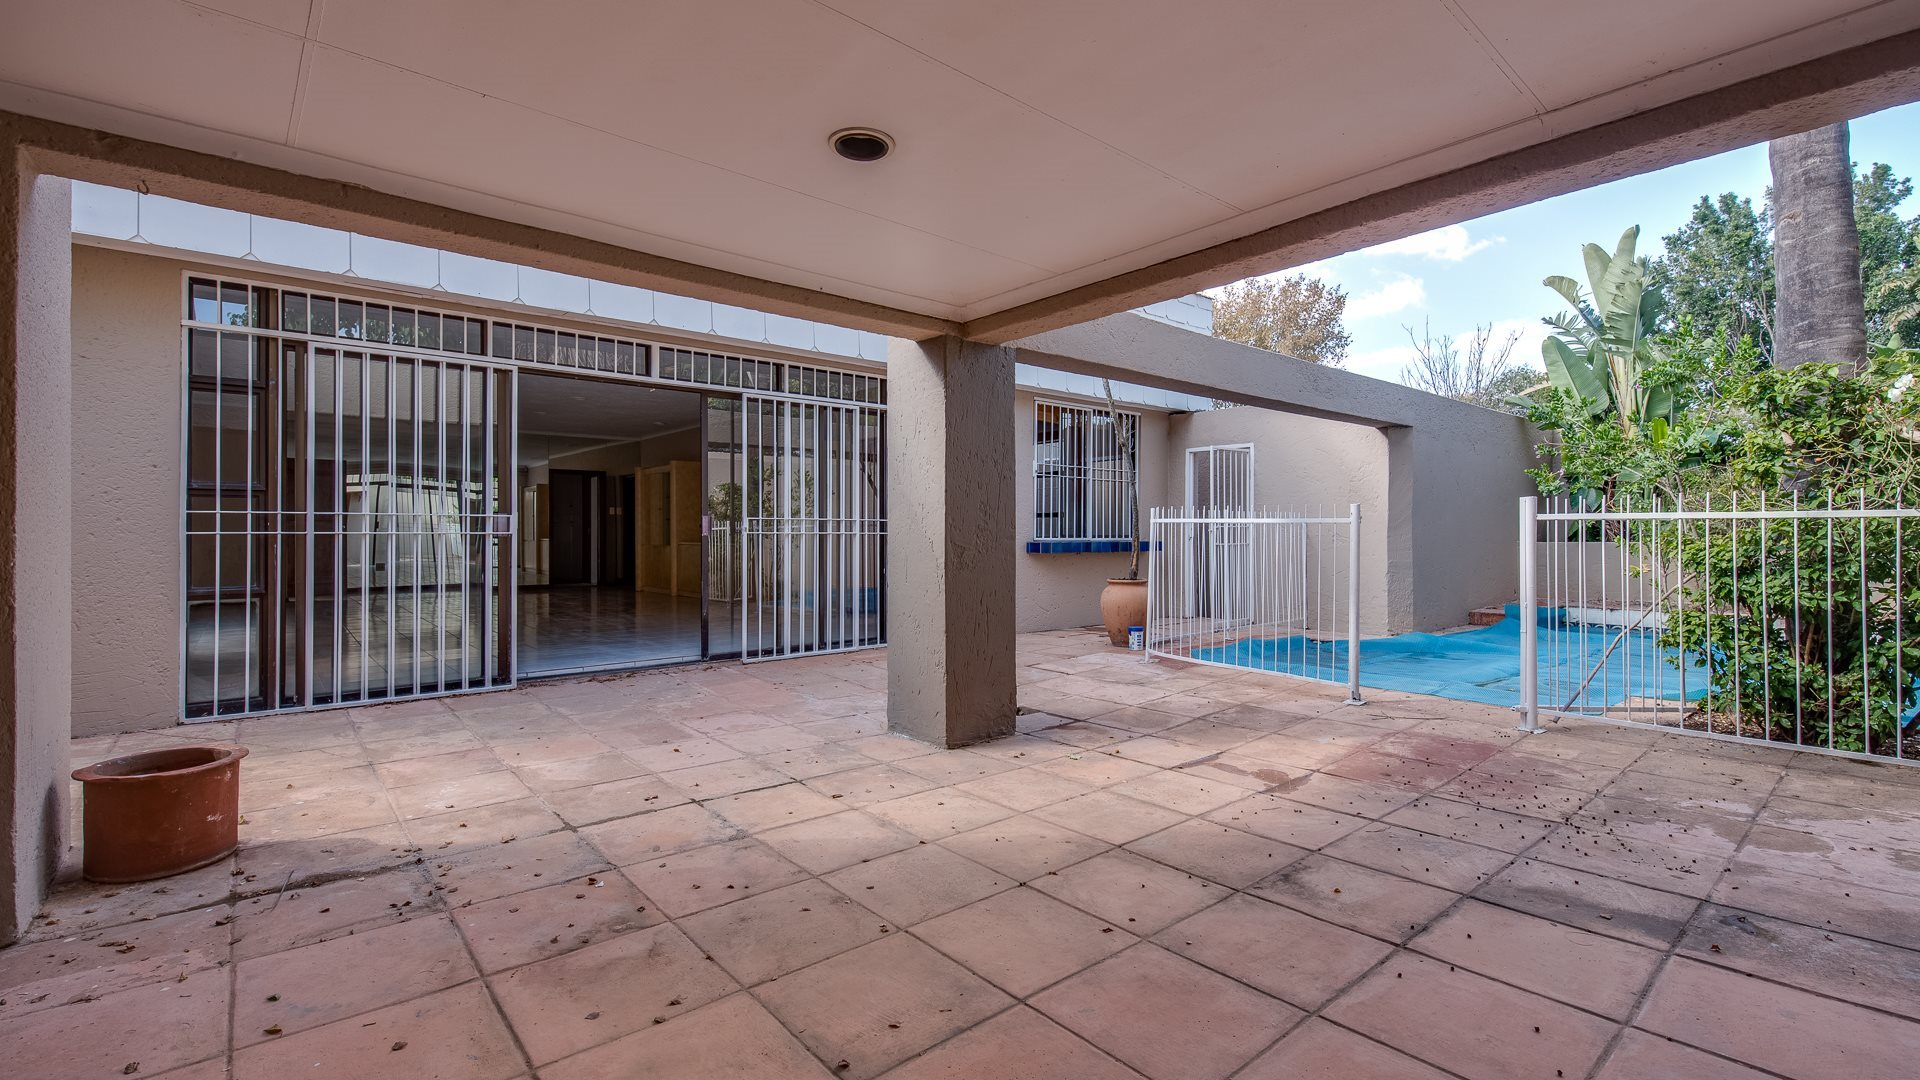 Johannesburg, Norwood Property  | Houses For Sale Norwood, Norwood, House 3 bedrooms property for sale Price:2,599,000